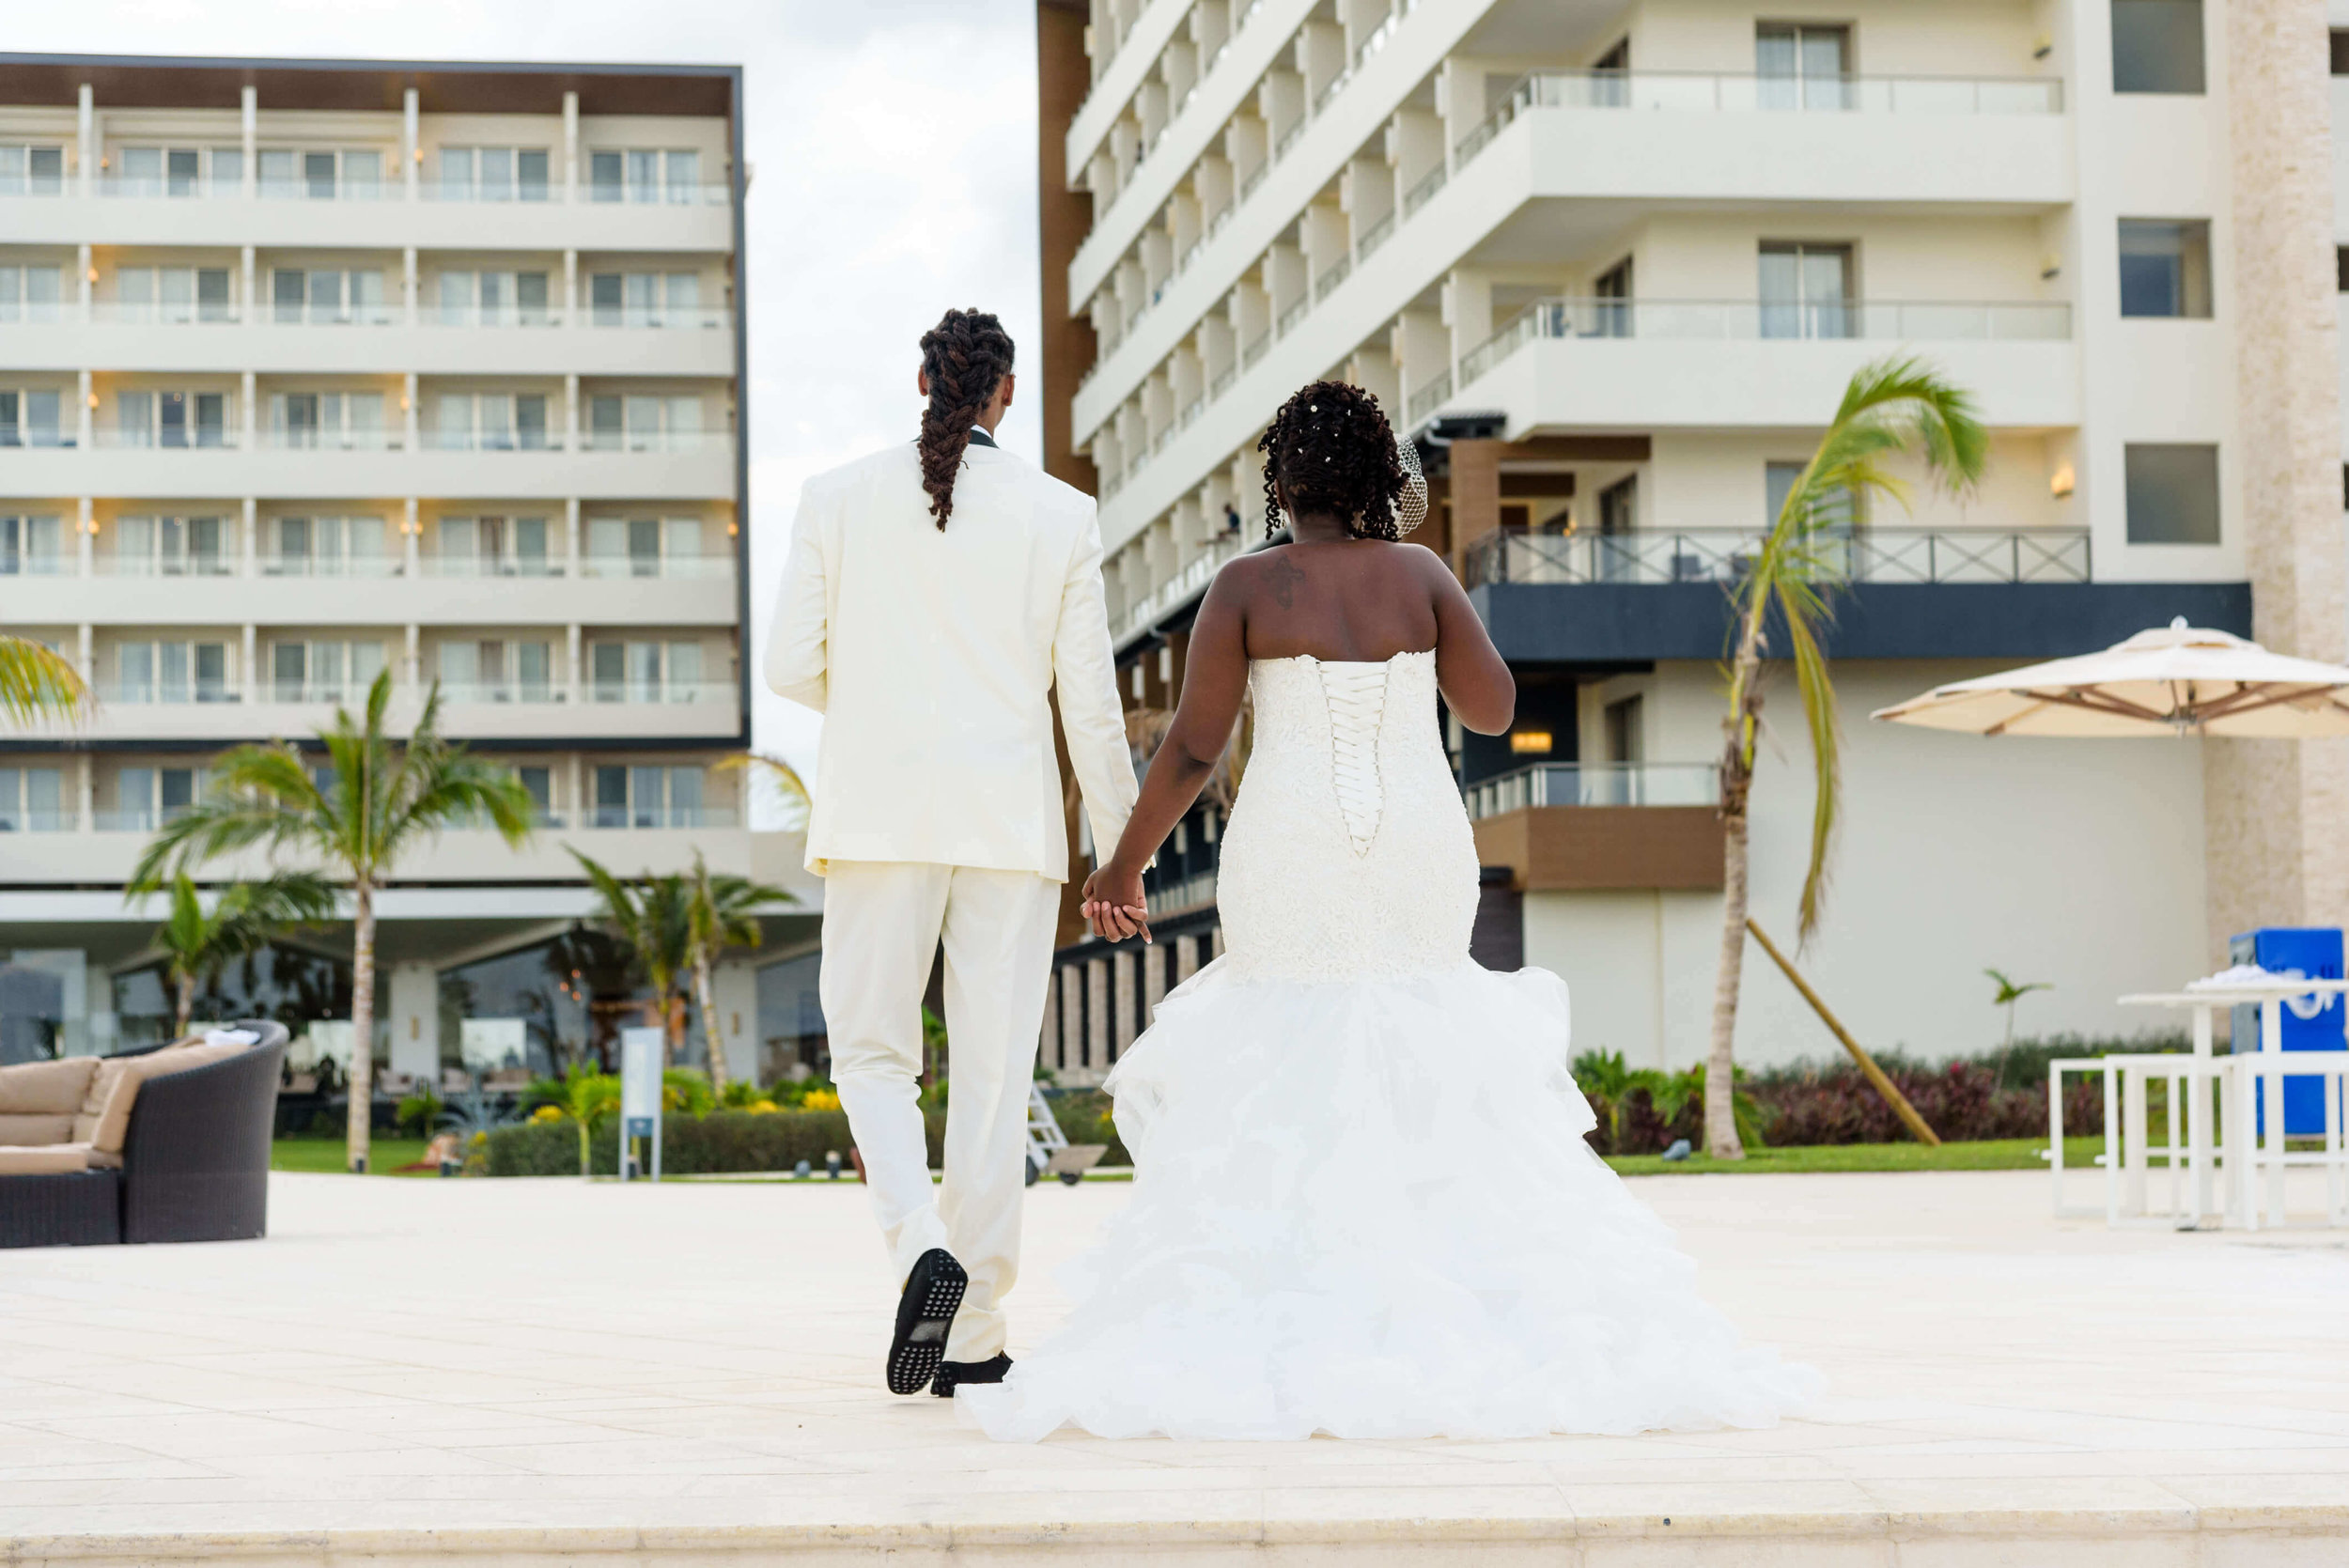 jamellah-how-to-plan-a-destination-wedding-in-montego-bay-jamaica-royalton-blue-waters-black-destination-bride-destiland-desti-guide-to-destination-weddings-couple-after-beach-ceremony-back.jpg